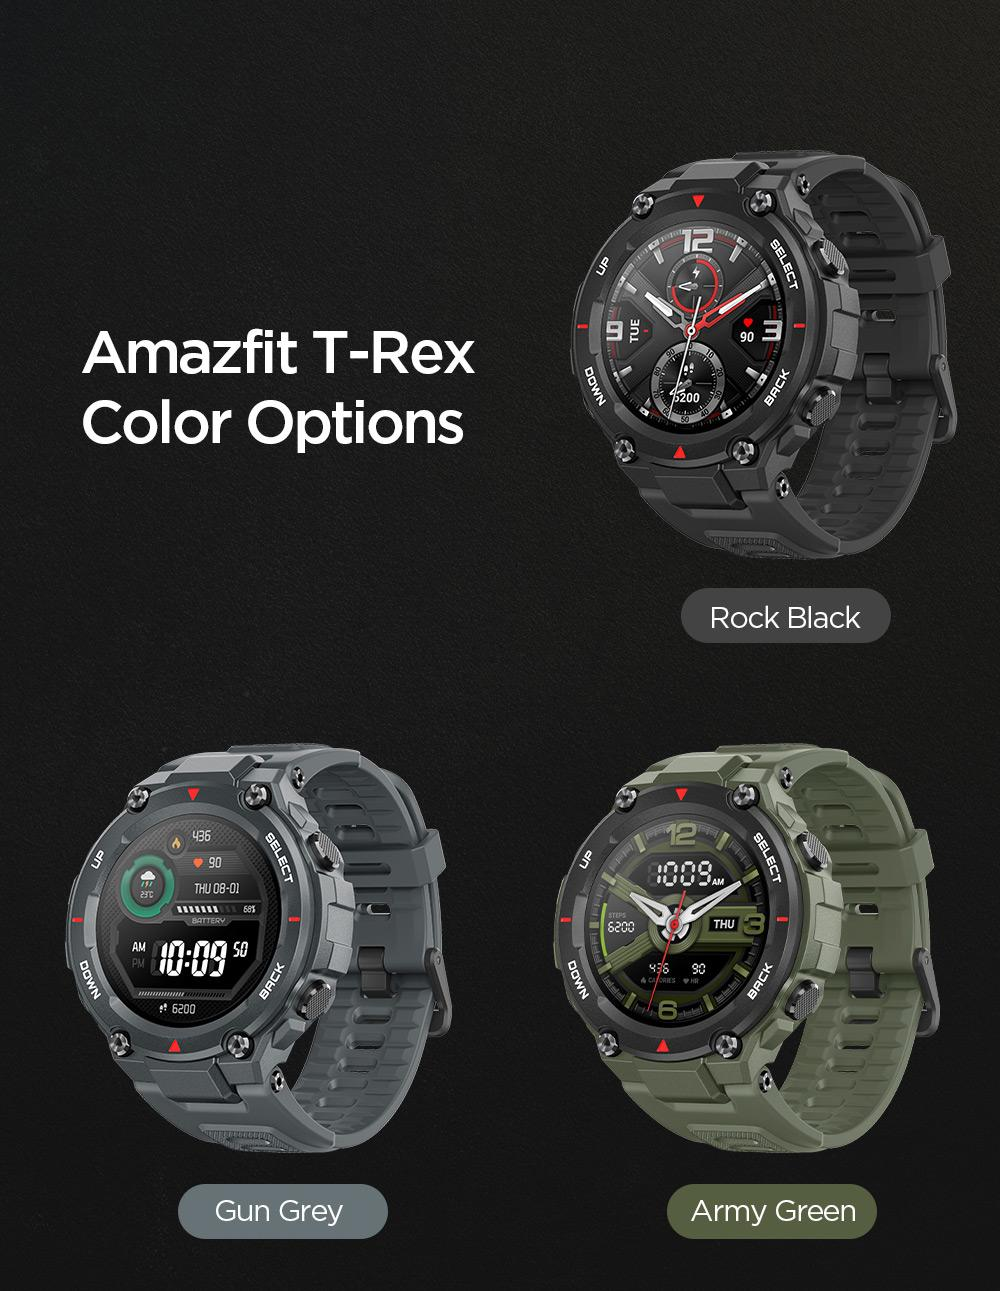 Amazfit T-rex Smartwatch 1.3 Inch Round AMOLED Screen 14 Sports Modes  5ATM Water Resistant GPS Positioning - Green